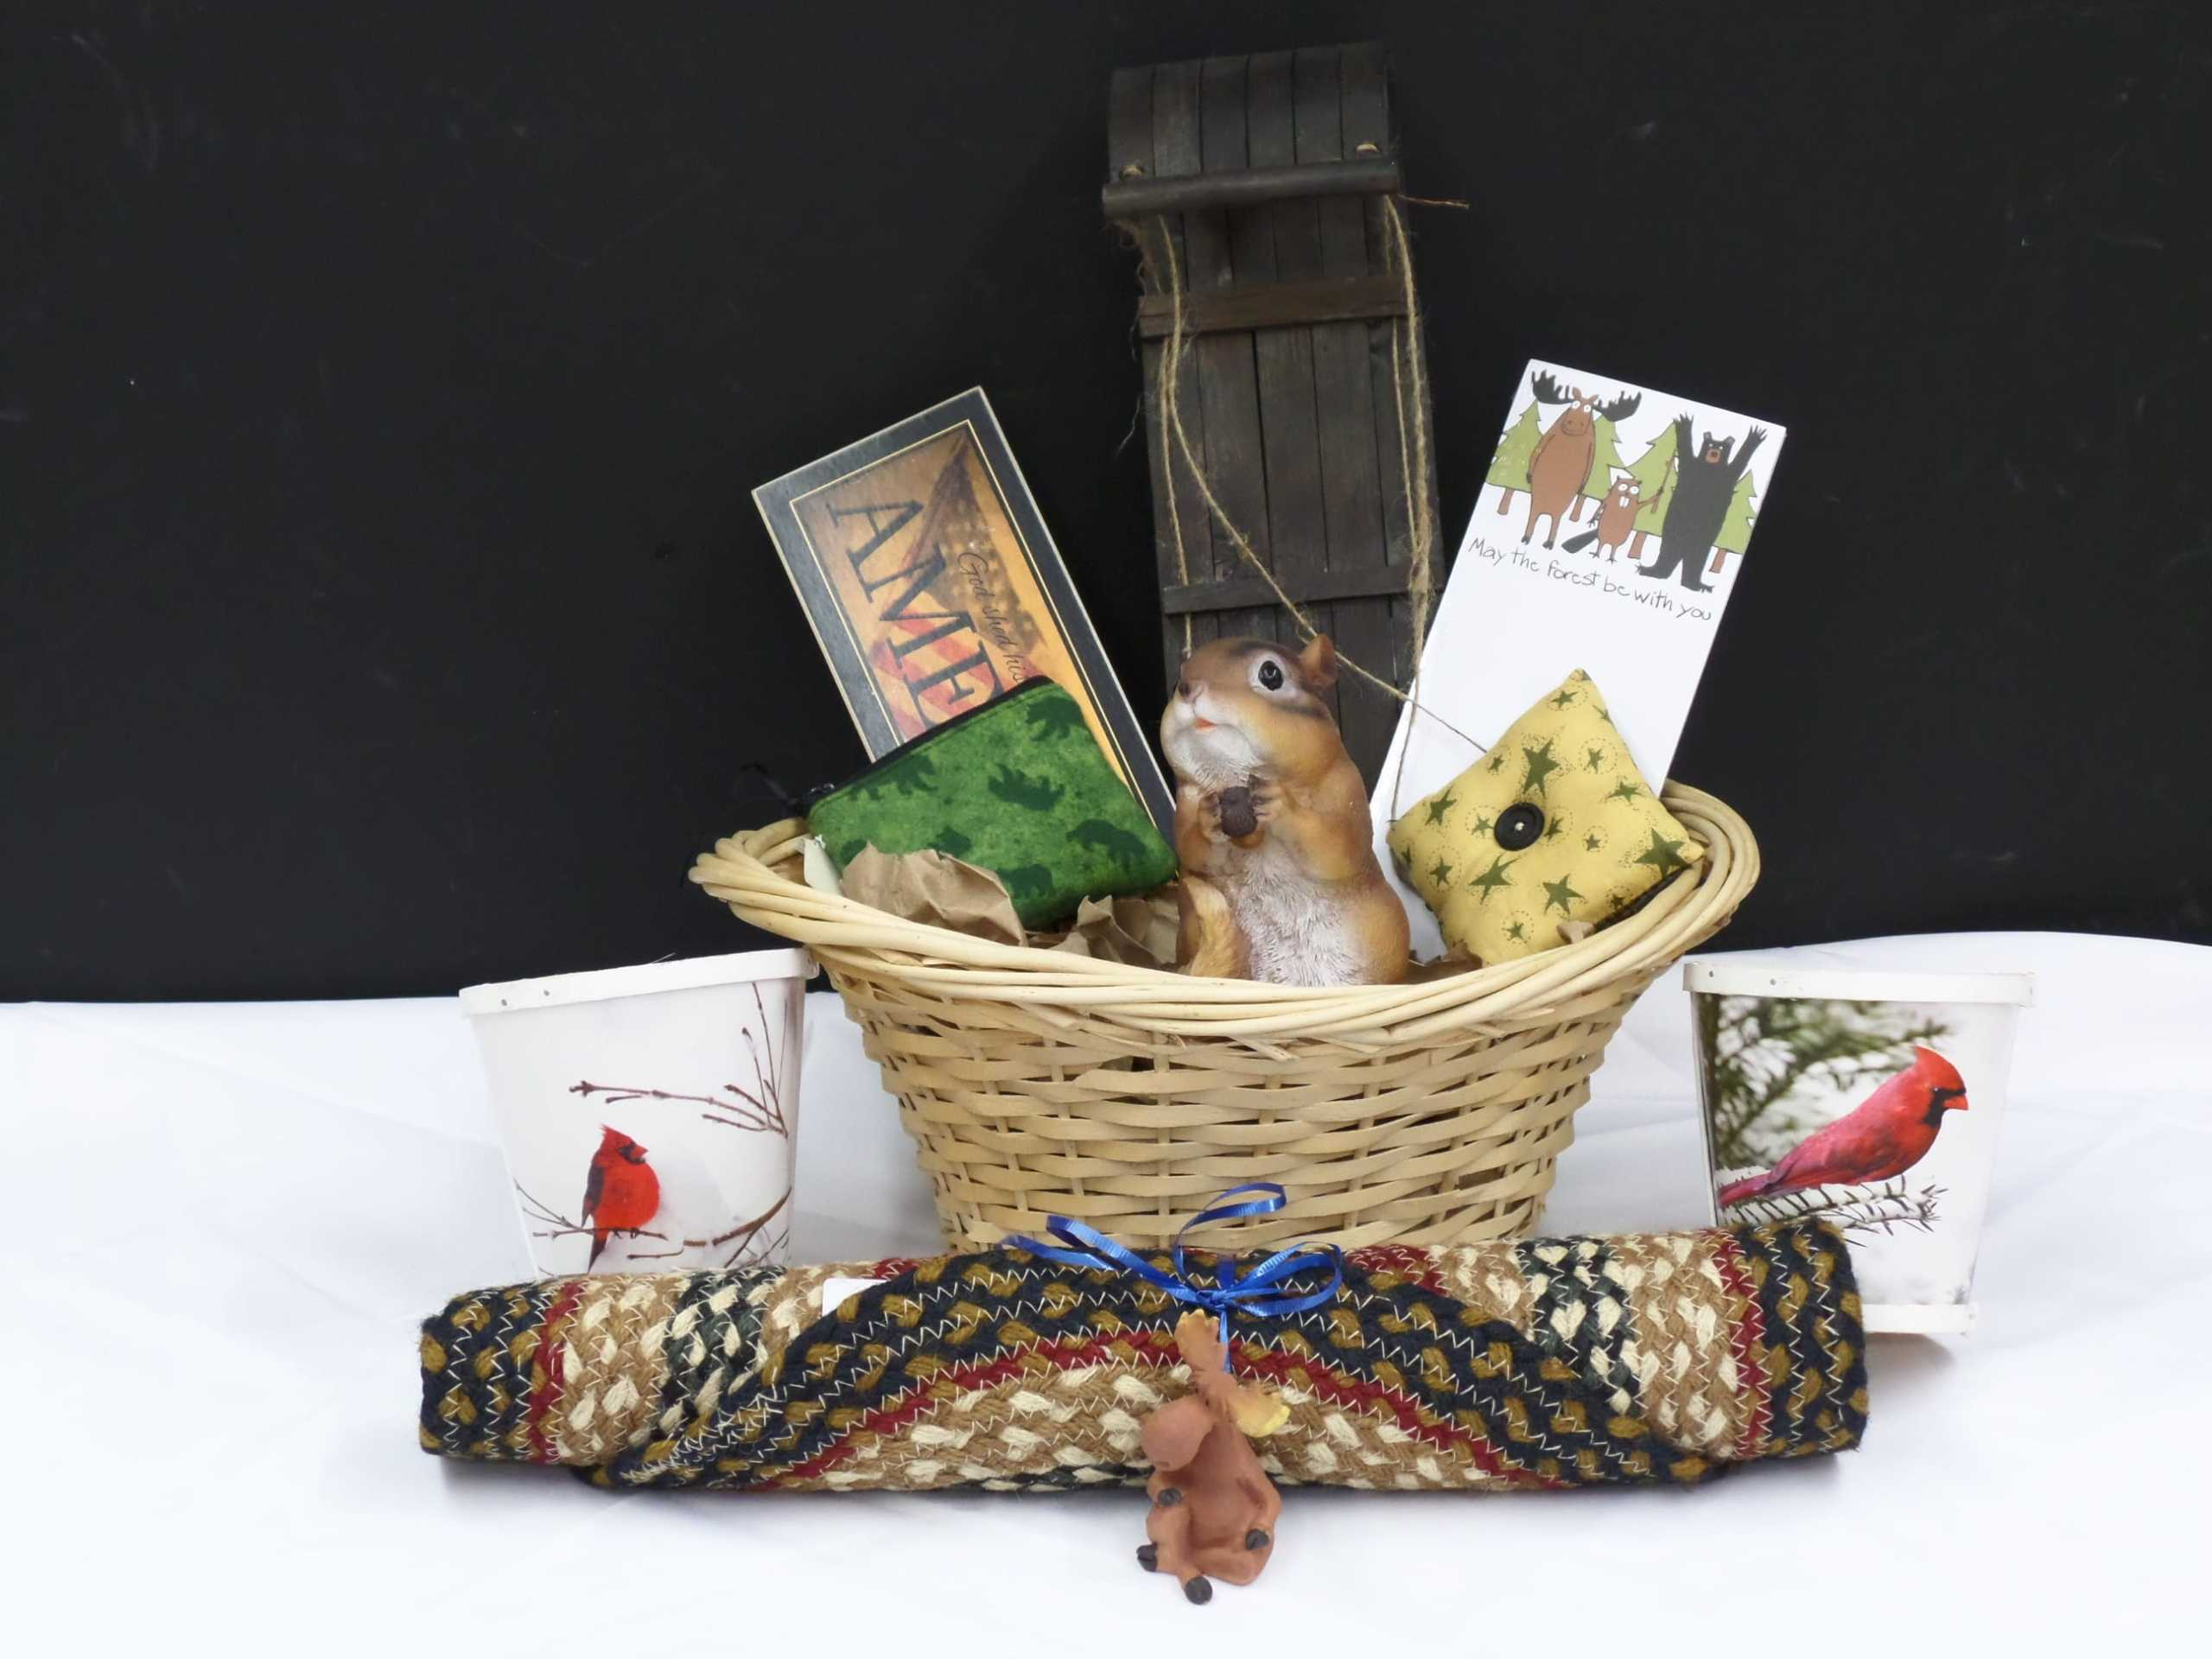 GIFT BASKET <br/> Donated by: NYS WOODSMEN'S FIELD DAYS <br/> Valued at: $100